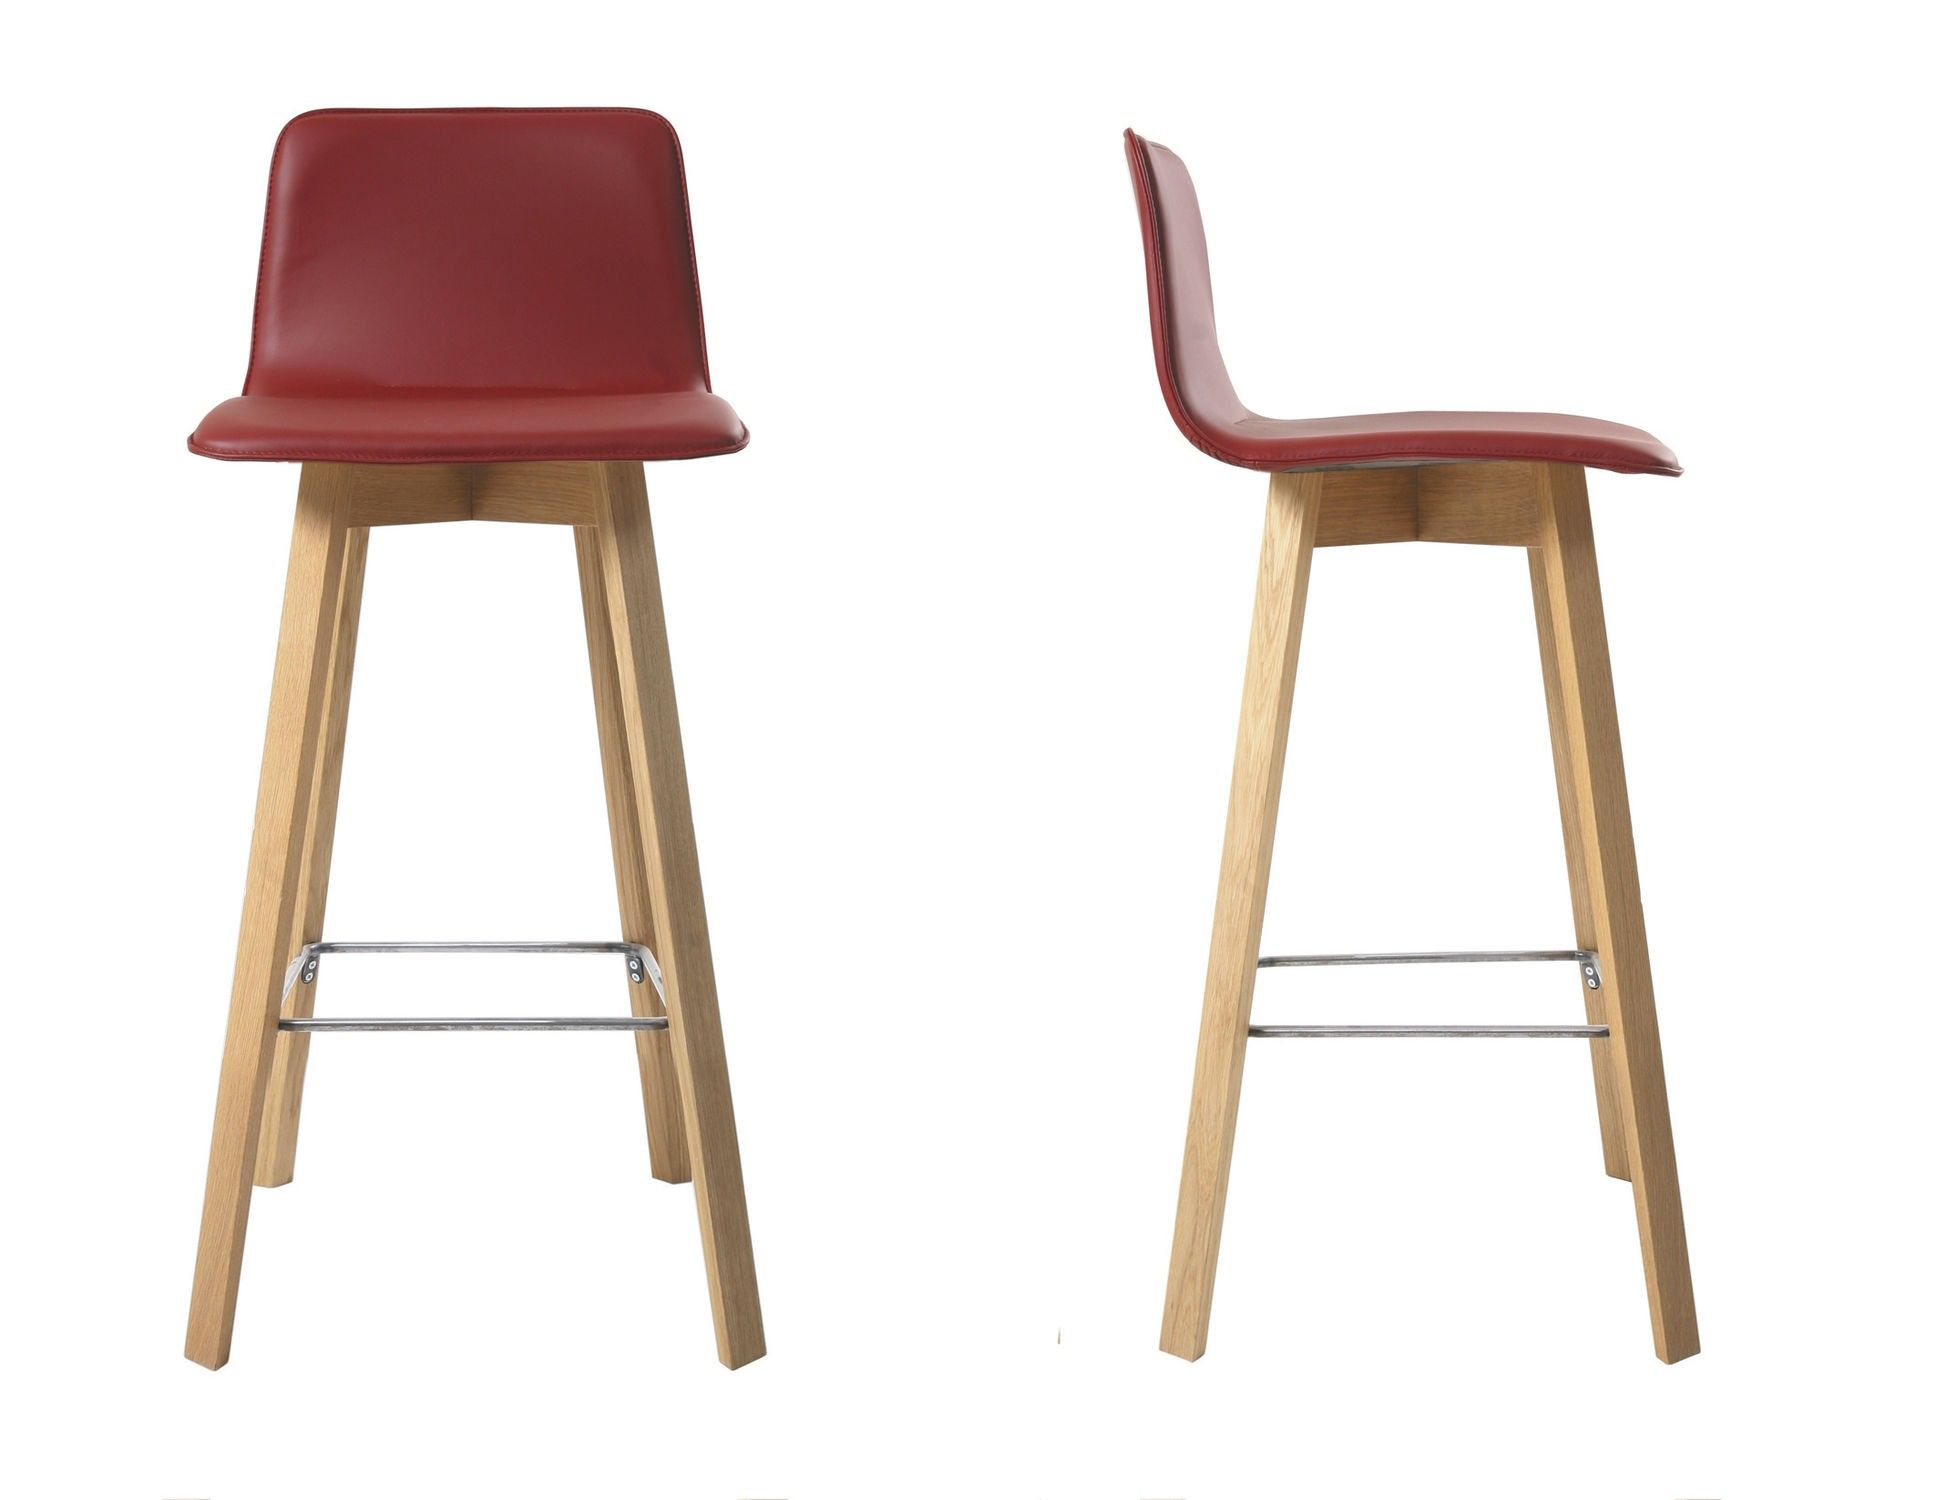 Kitchen Stools With Backs Contemporary Wooden Upholstered ...